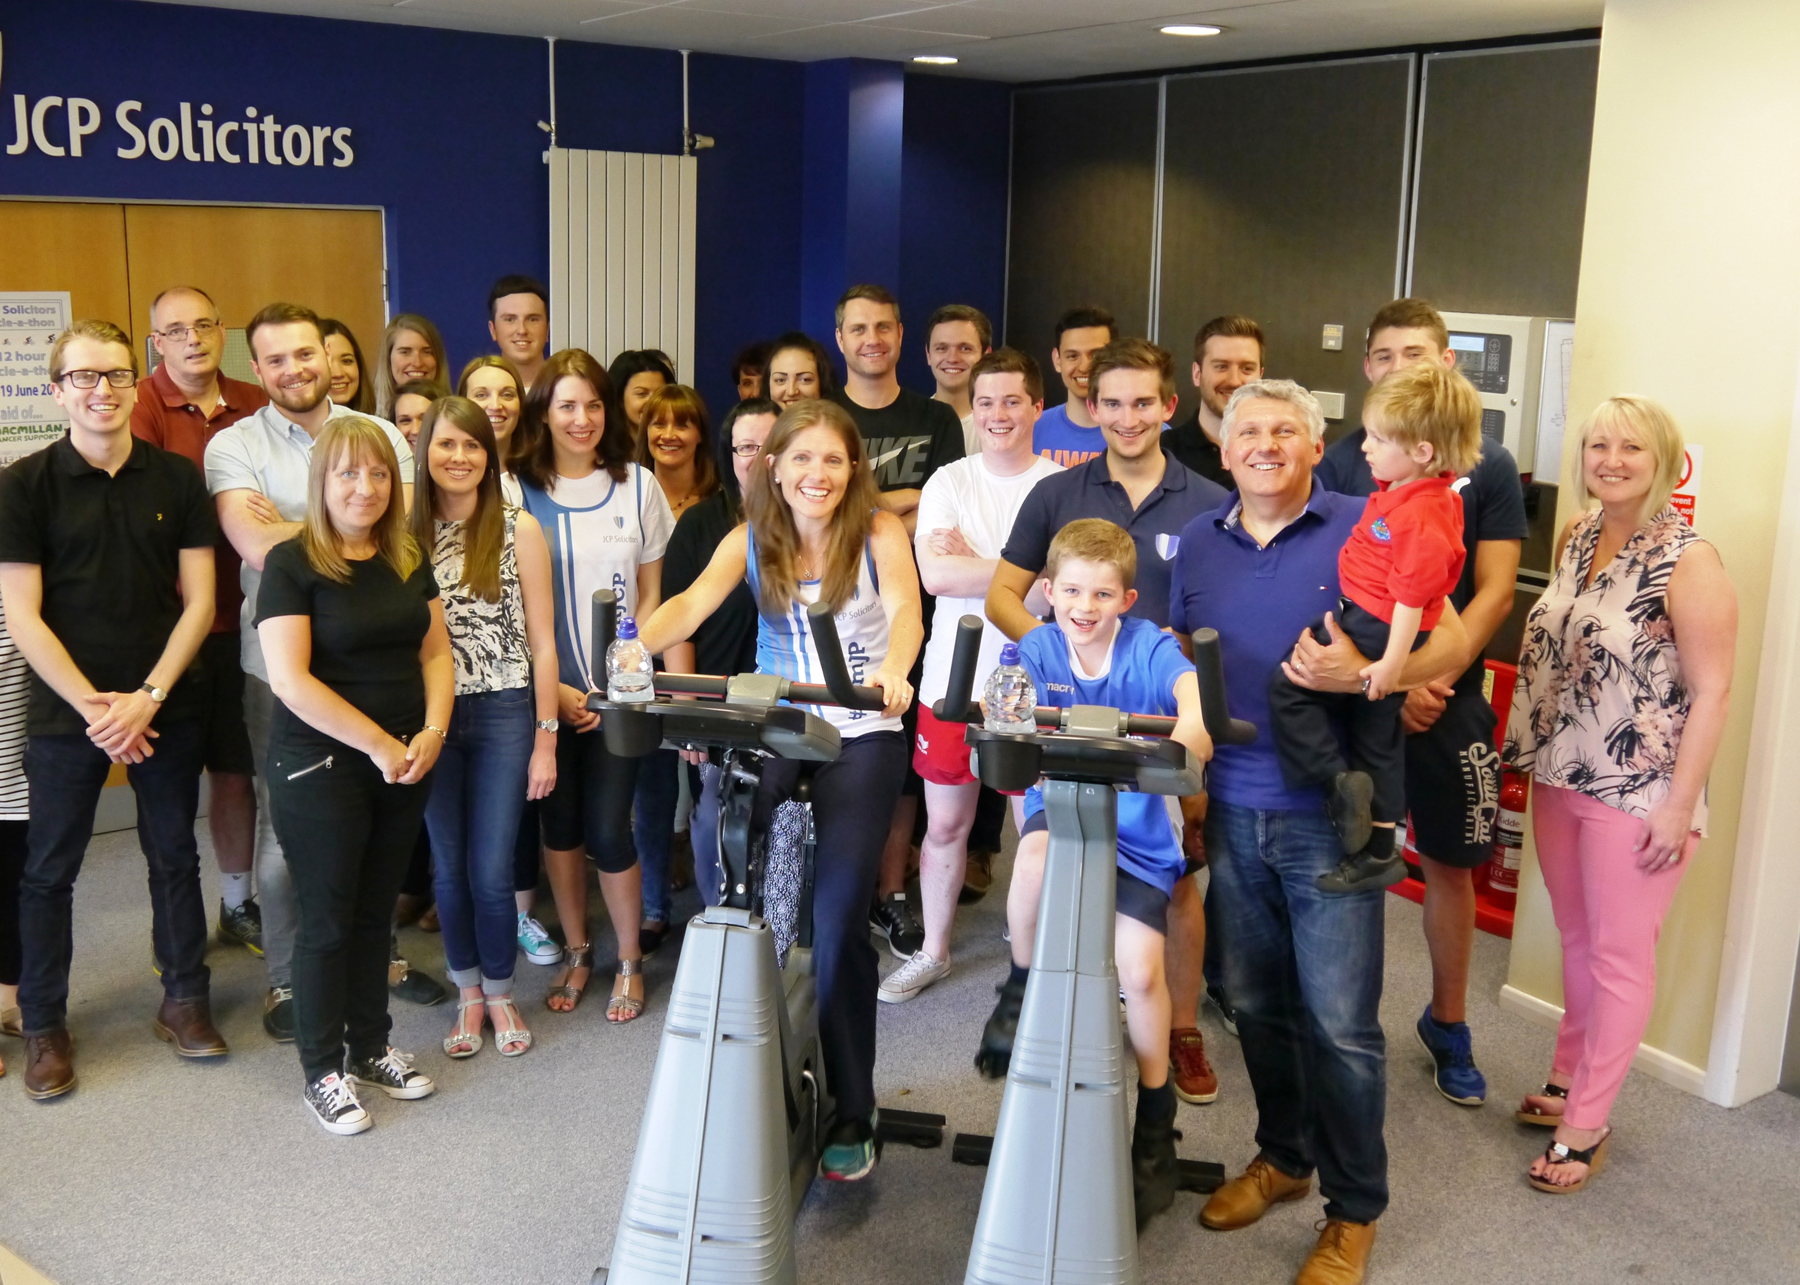 JCP Solicitors spinathon to help raise £800 for Macmillan Cancer Support x5